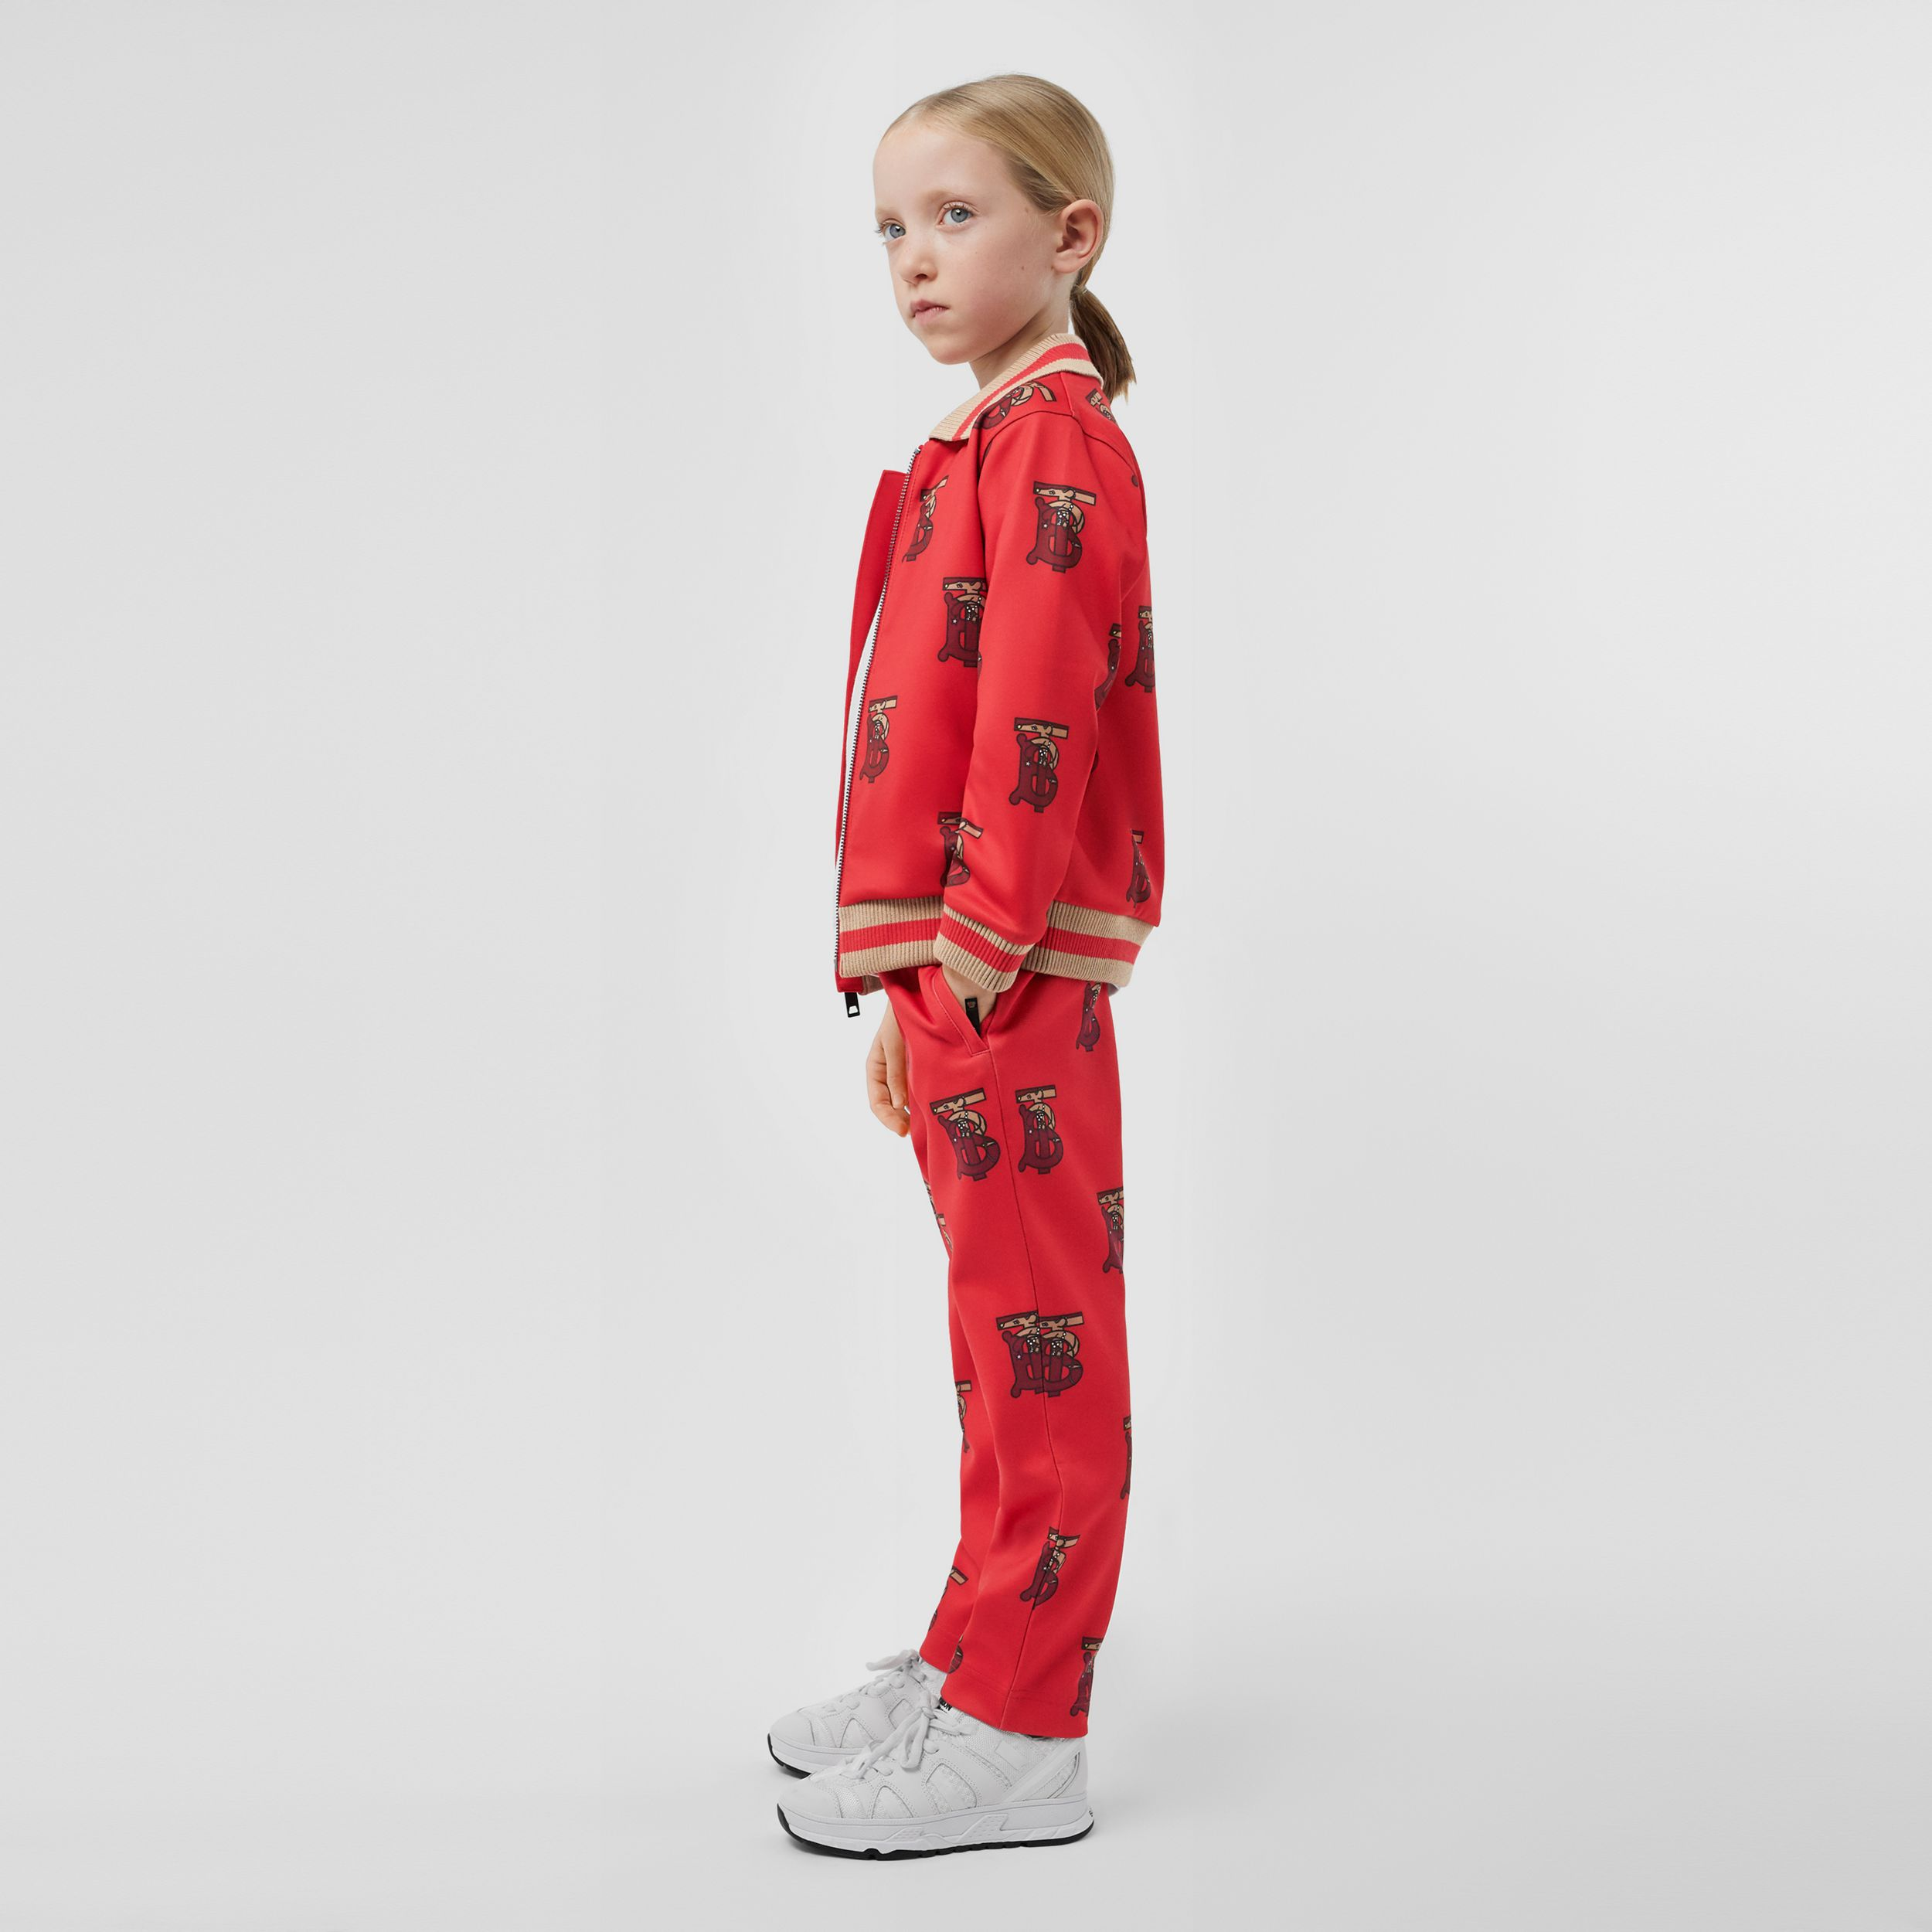 Monogram Motif Neoprene Trackpants in Bright Red | Burberry - 3